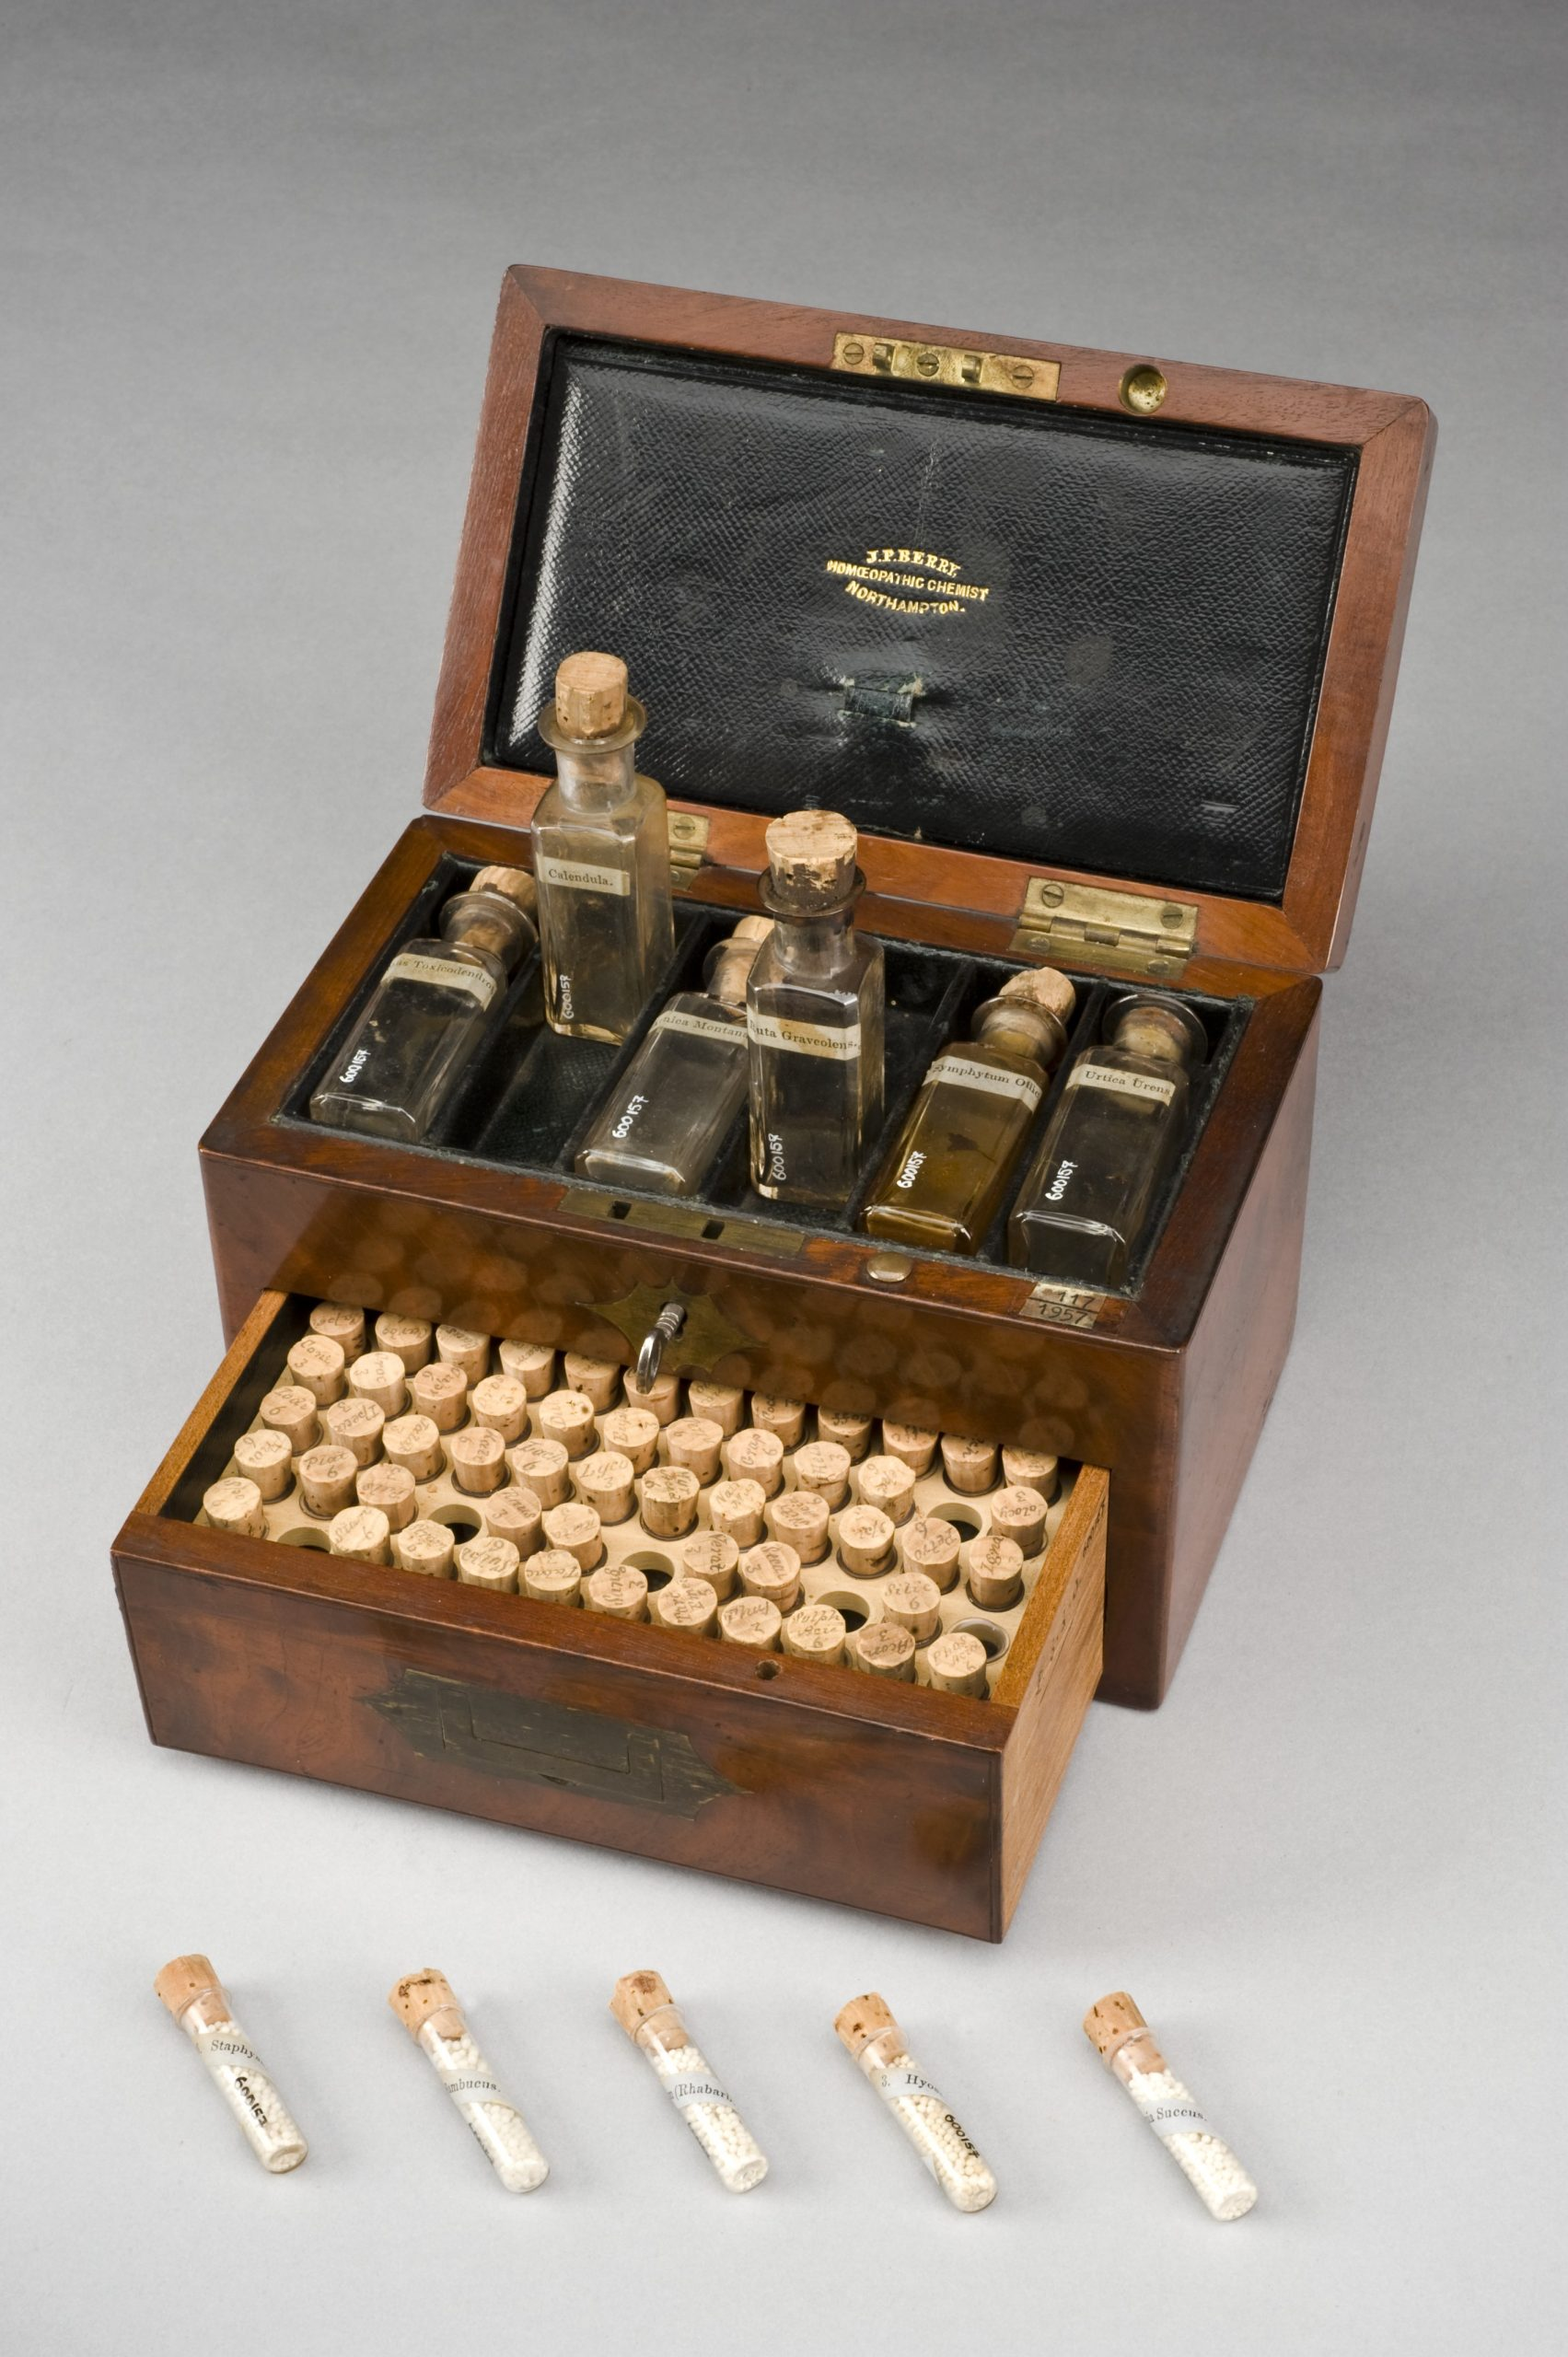 "L0057796 Homeopathic medicine chest, Northamptonshire, England, 1801- Credit: Science Museum, London. Wellcome Images images@wellcome.ac.uk http://wellcomeimages.org This mahogany medicine chest contains 69 small glass vials with handwritten labels and six large bottles. Homeopathy relies on the idea that 'like cures like'. For instance, if you are vomiting, your treatment will be something that causes vomiting but in a smaller, much diluted dose. One of the large bottles is labelled ""Urtica urens"". This treatment is made from a dwarf stinging nettle and is used on burns and skin irritations, the same effect the plant has on the body.  maker: Berry, J P  Place made: Northampton, Northamptonshire, England, United Kingdom made: 1801-1900 Published:  -  Copyrighted work available under Creative Commons Attribution only licence CC BY 4.0 http://creativecommons.org/licenses/by/4.0/"